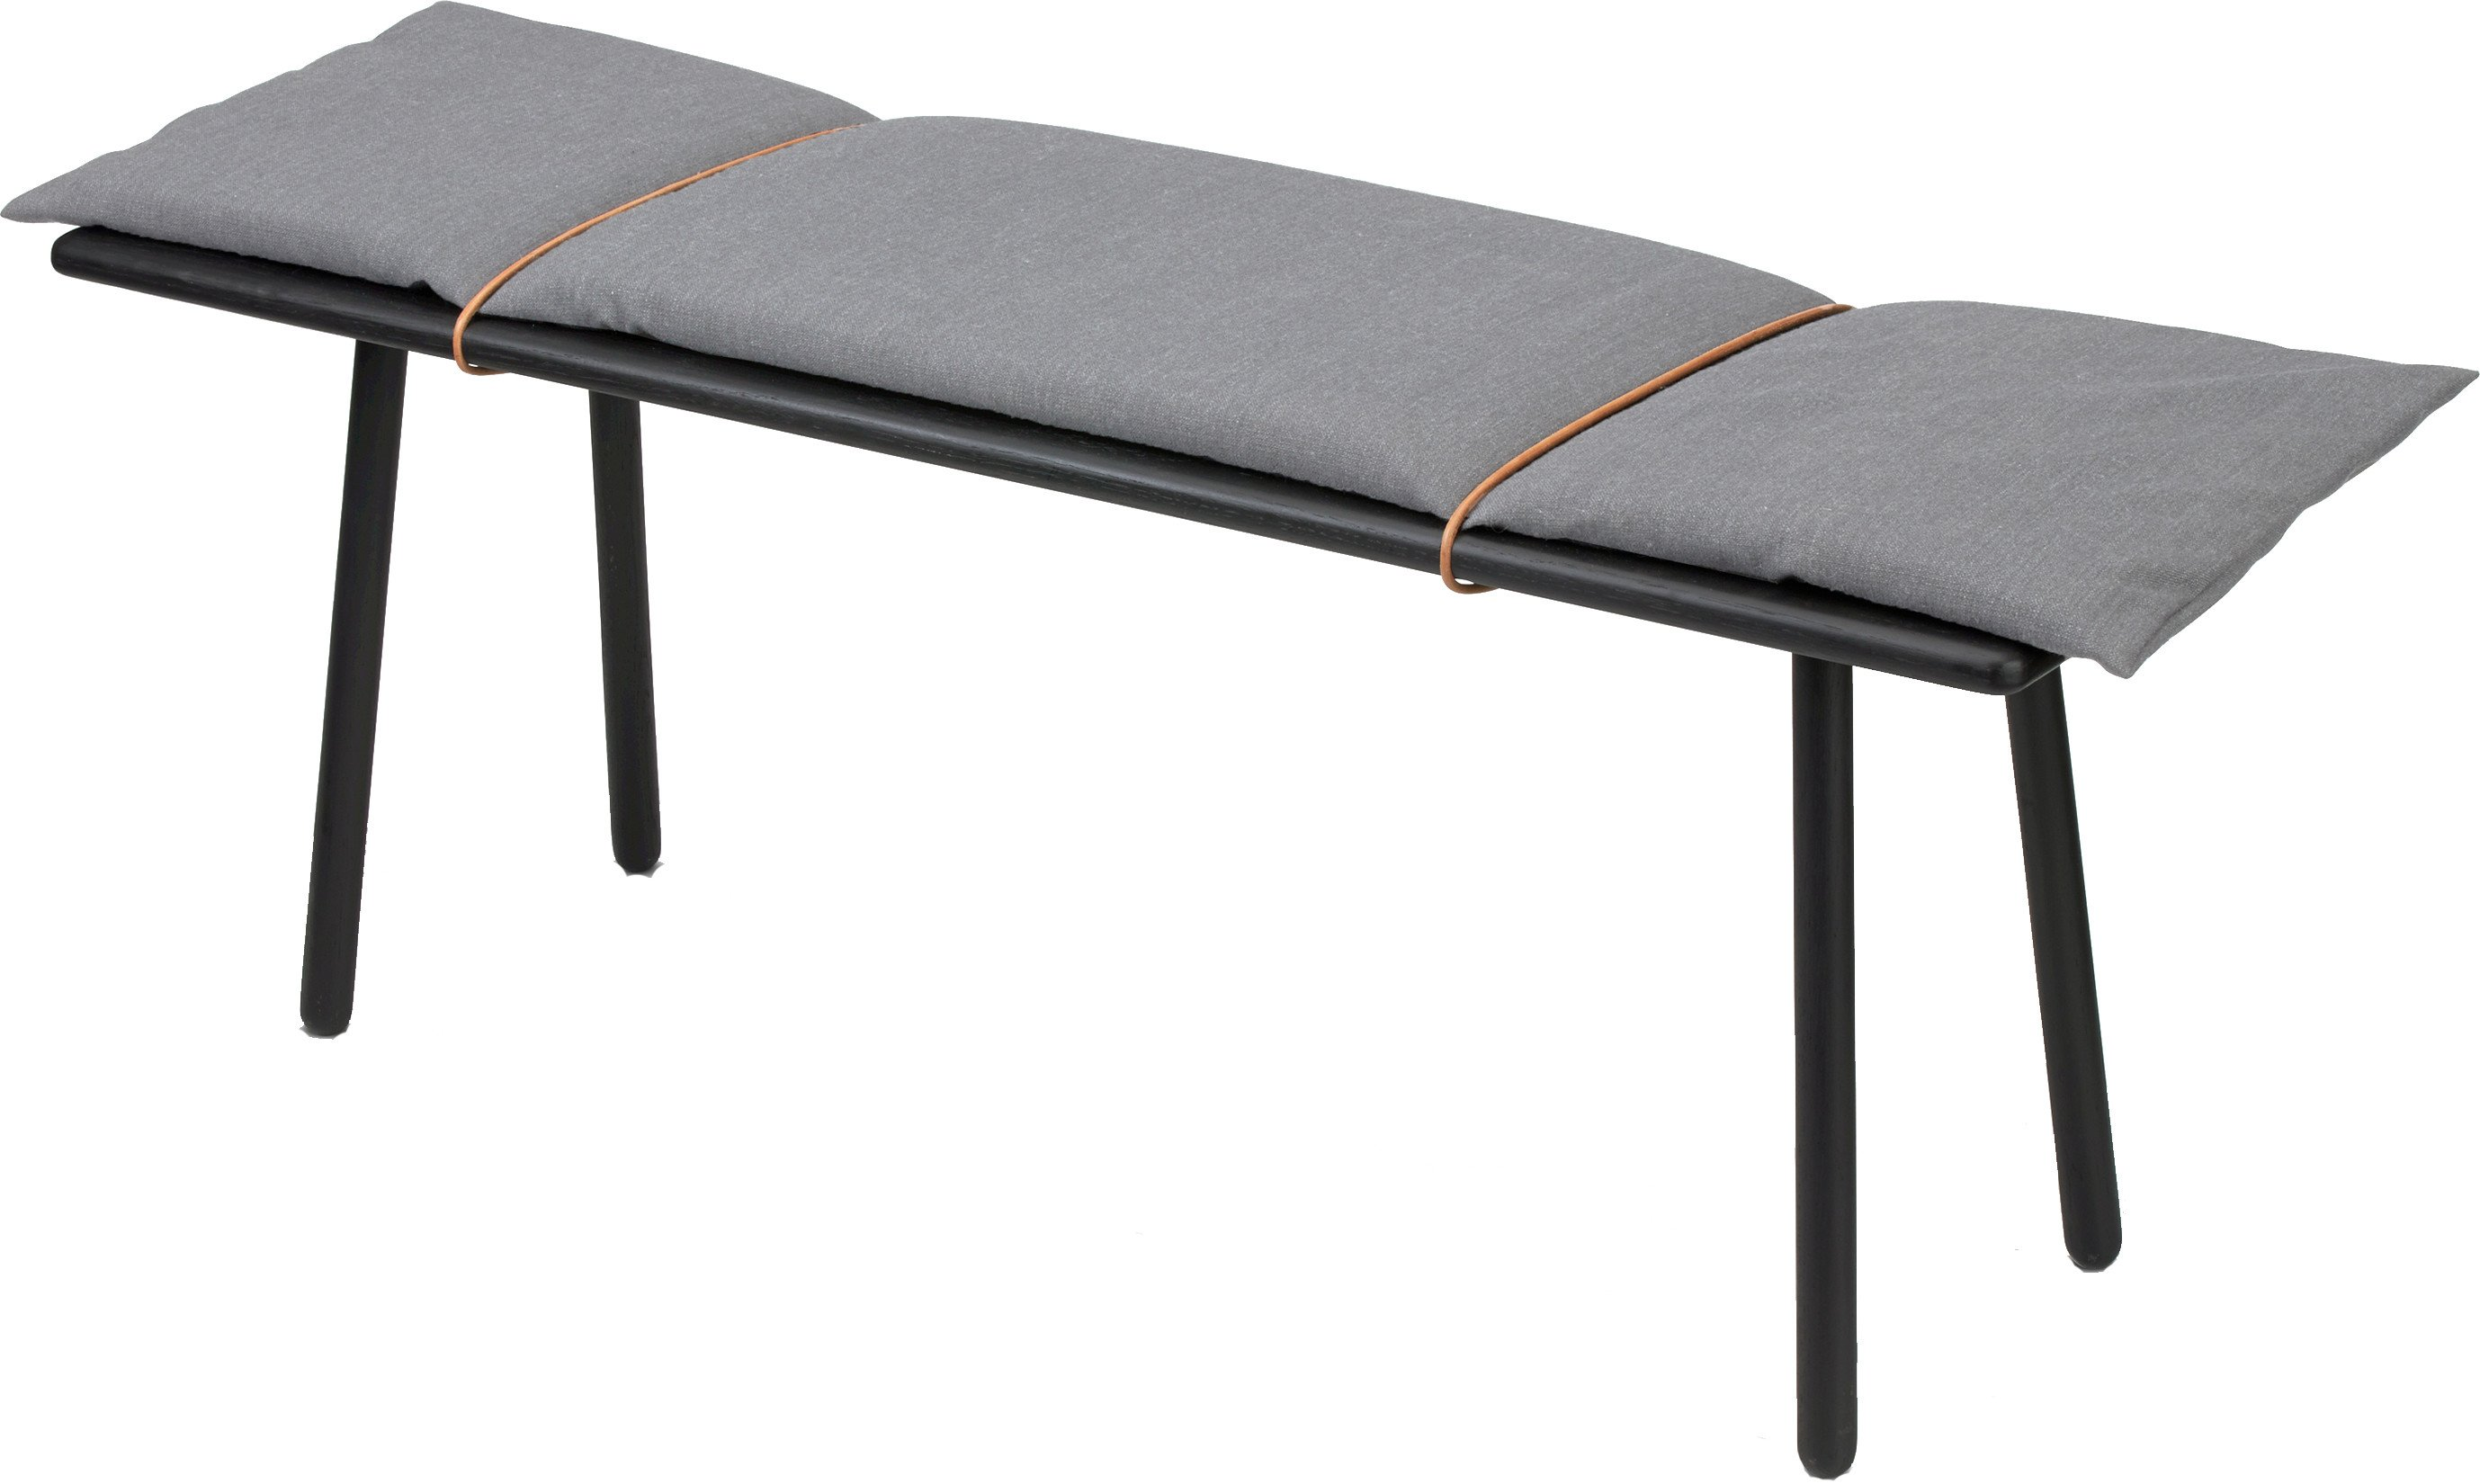 Georg Bench Black Oak by C. Liljenberg Halstrøm for Skagerak